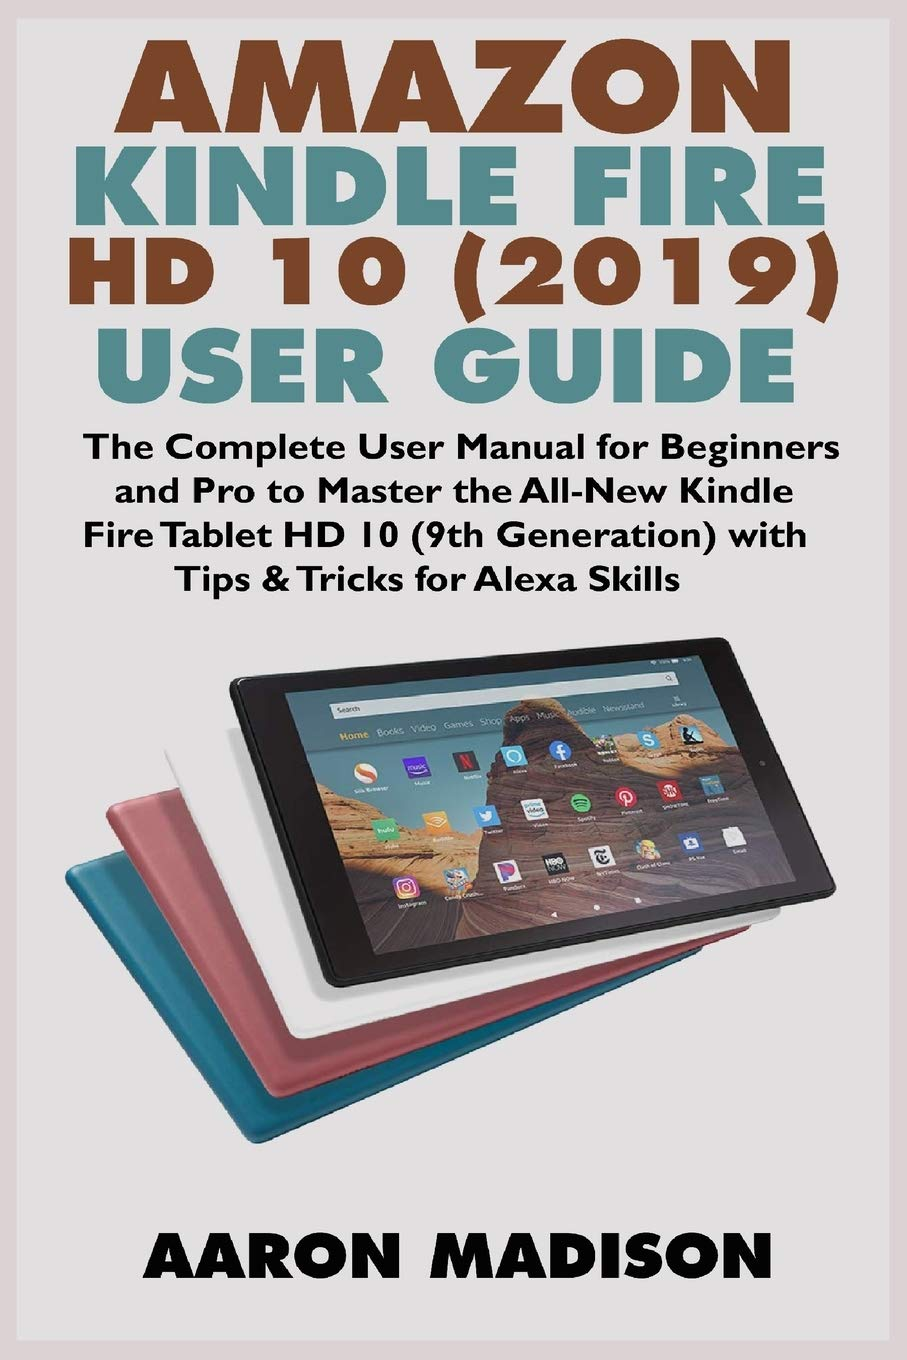 How To Find Mac Address For New Fire Hd At Startup